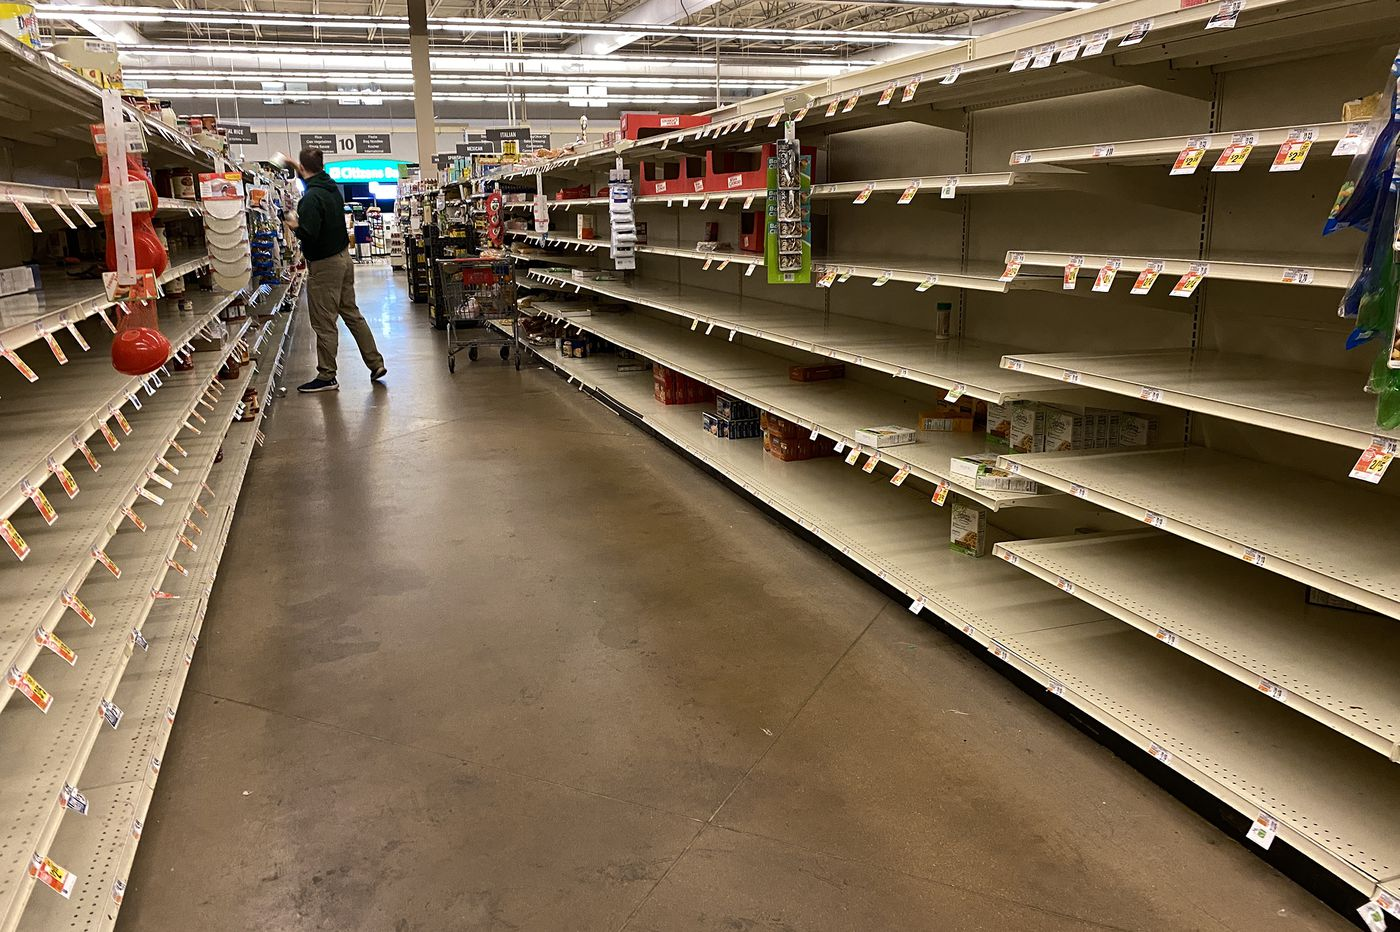 Grocery store exec: Please stop panic shopping | Opinion